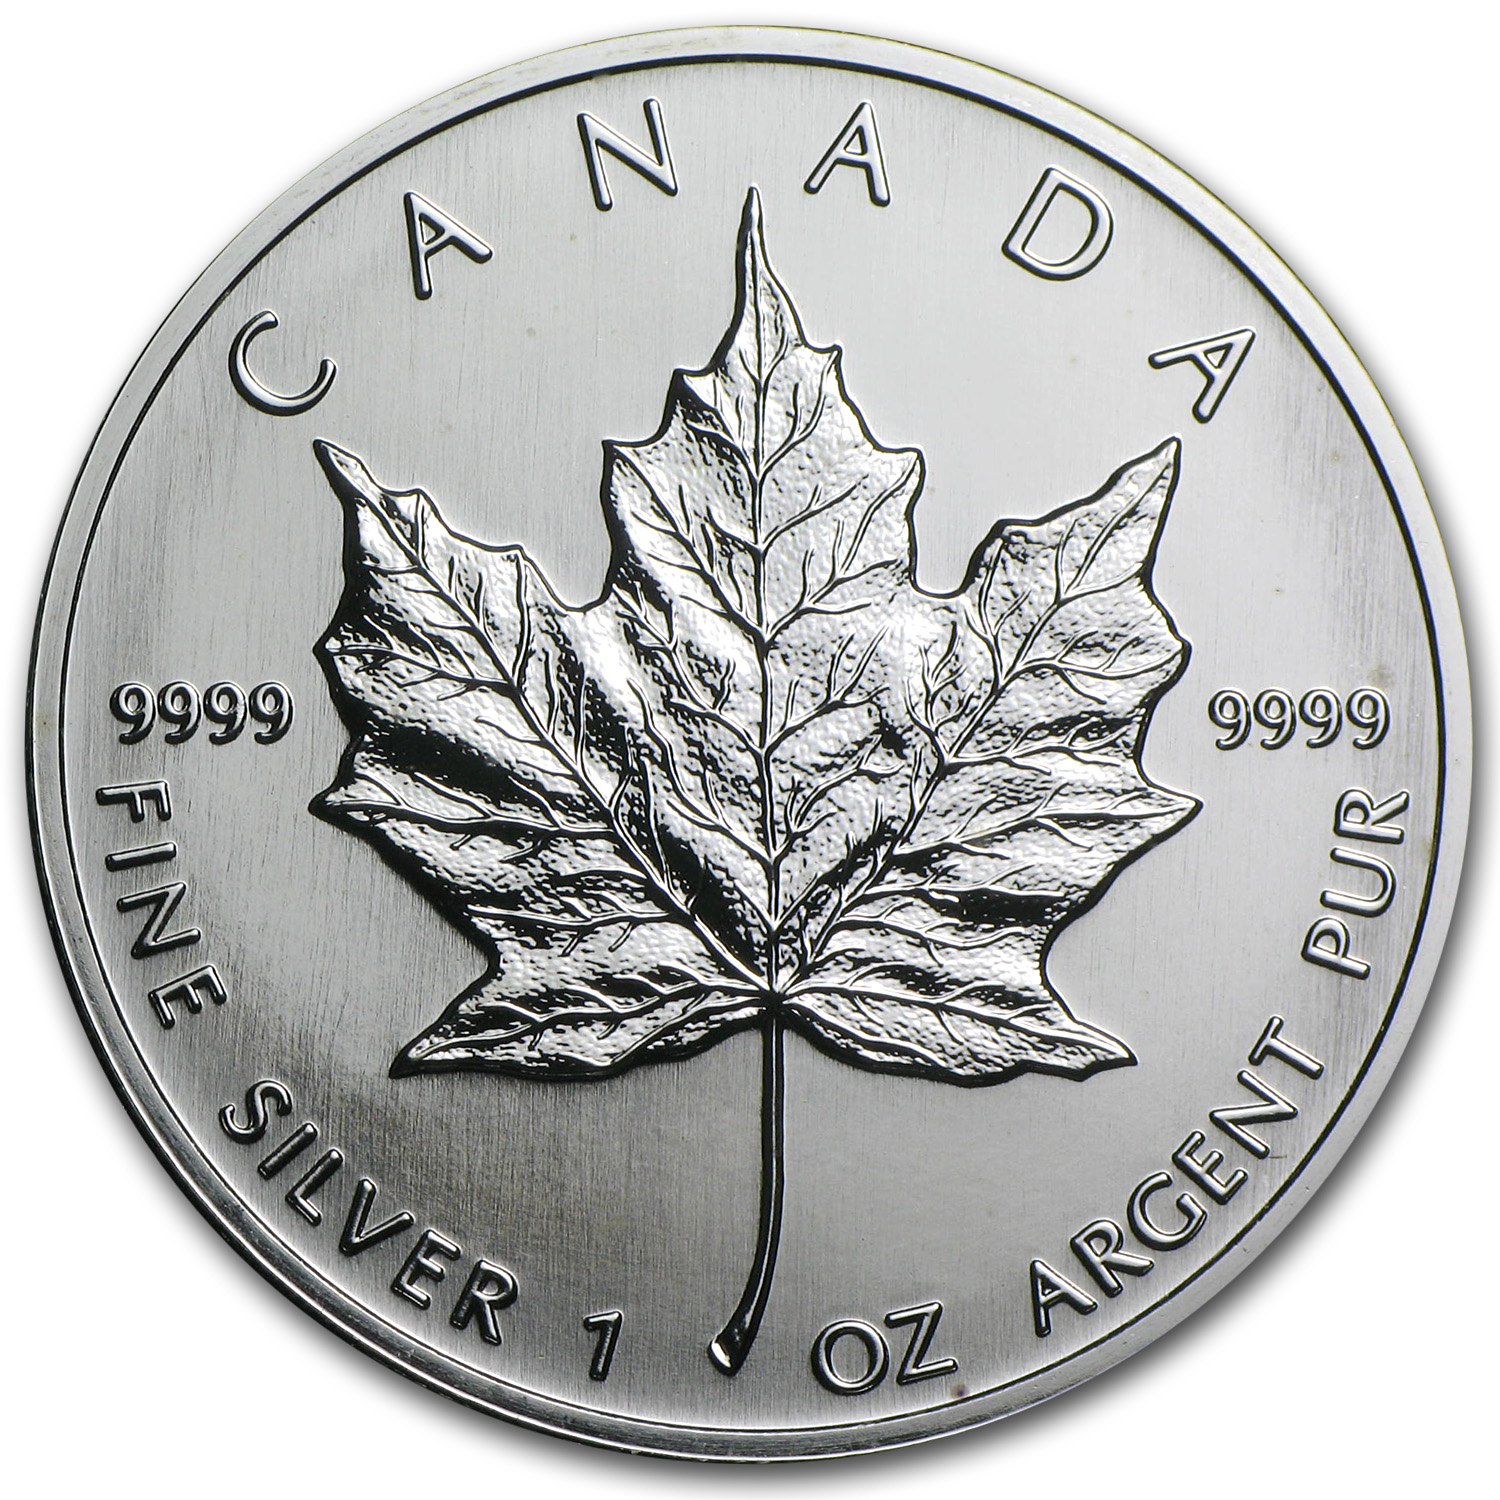 1991 1 oz Silver Canadian Maple Leaf (Brilliant Uncirculated)